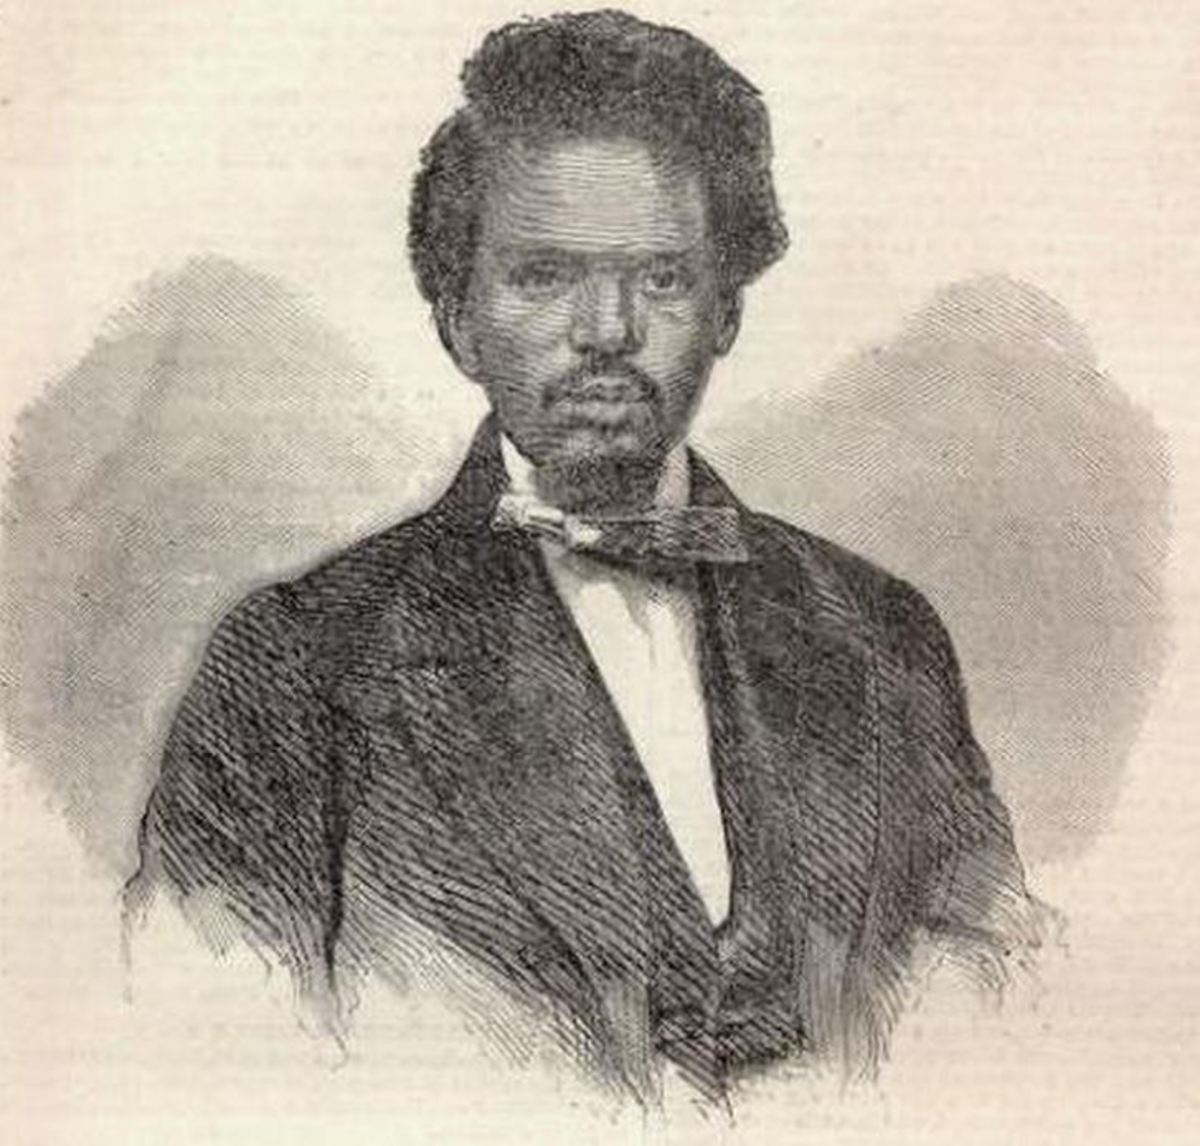 Robert Smalls at the time he captured the Planter. From an engraving published in Harper's Weekly, June 14, 1862